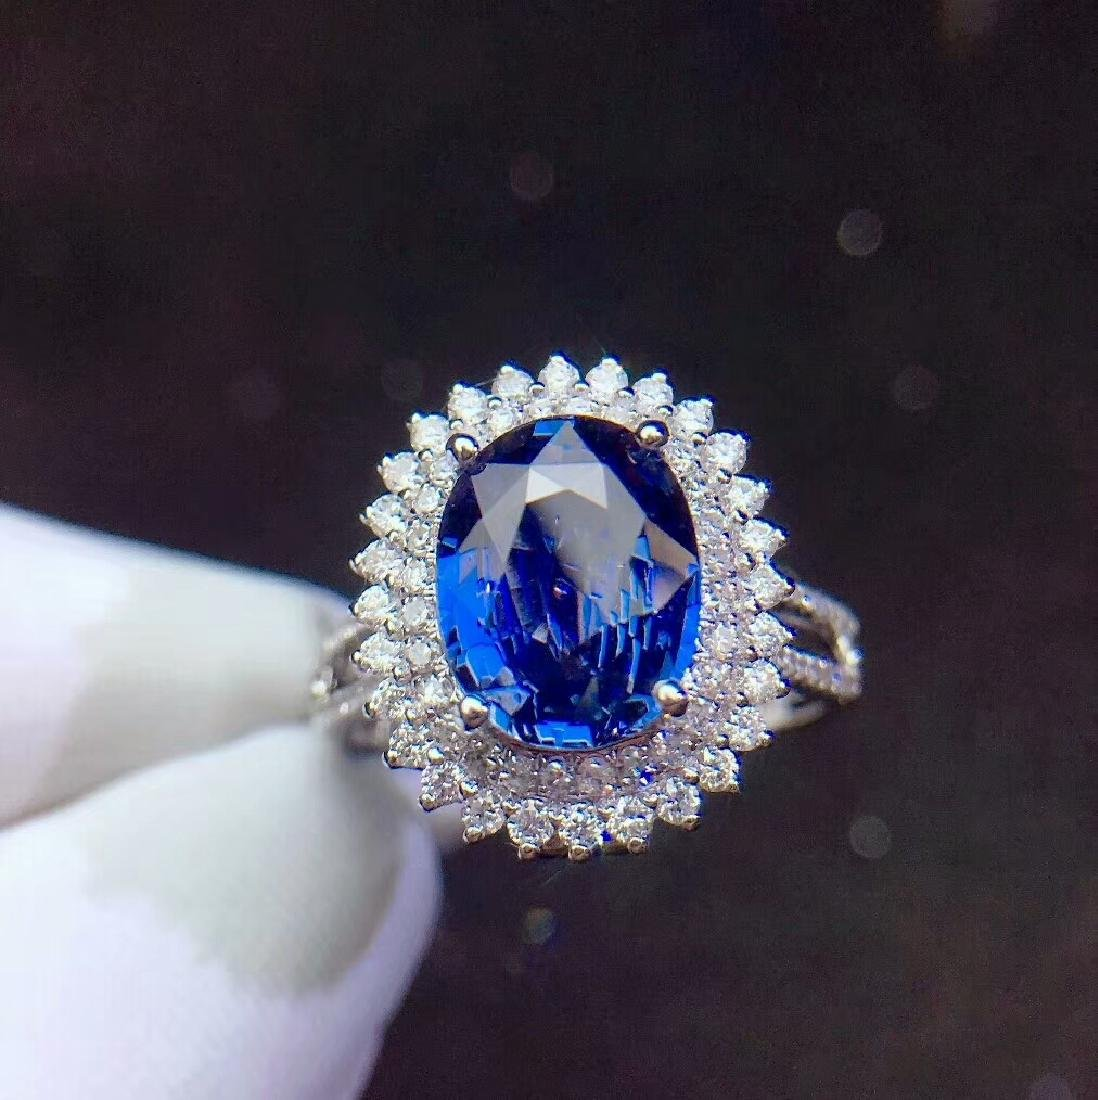 3.04ct Sapphire Ring in 18kt white Gold